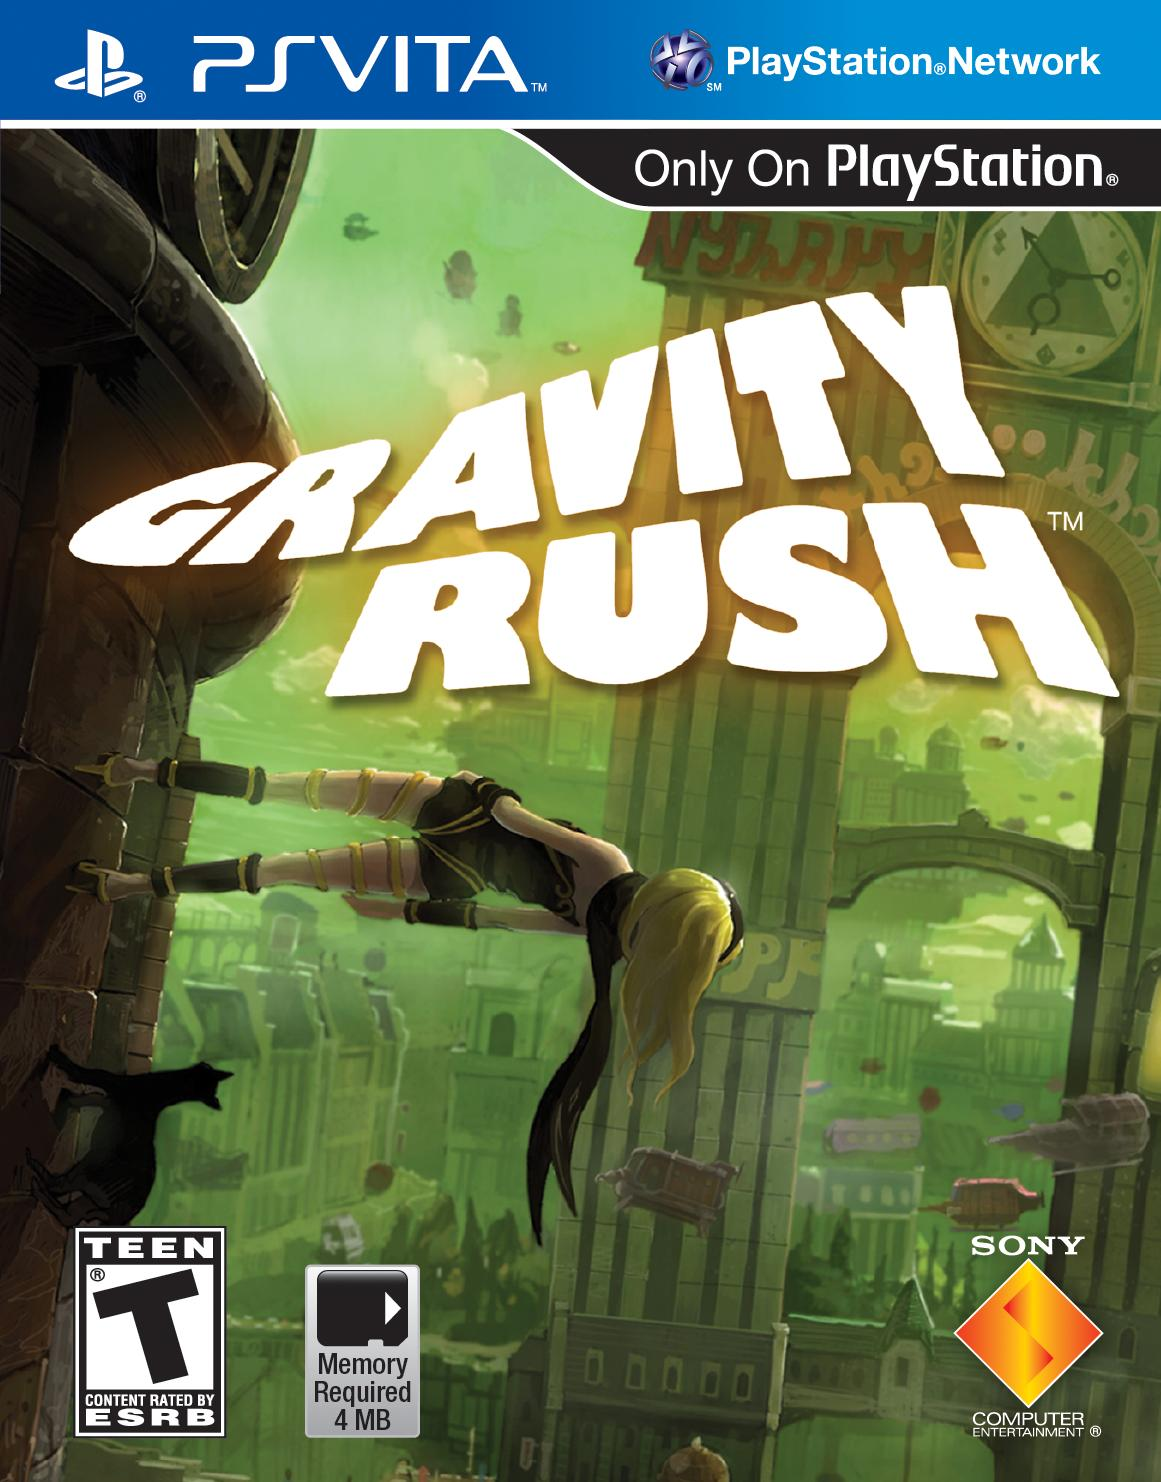 http://vignette3.wikia.nocookie.net/gravityrush/images/9/9a/Gravity_rush_boxart.jpg/revision/latest?cb=20120210030830